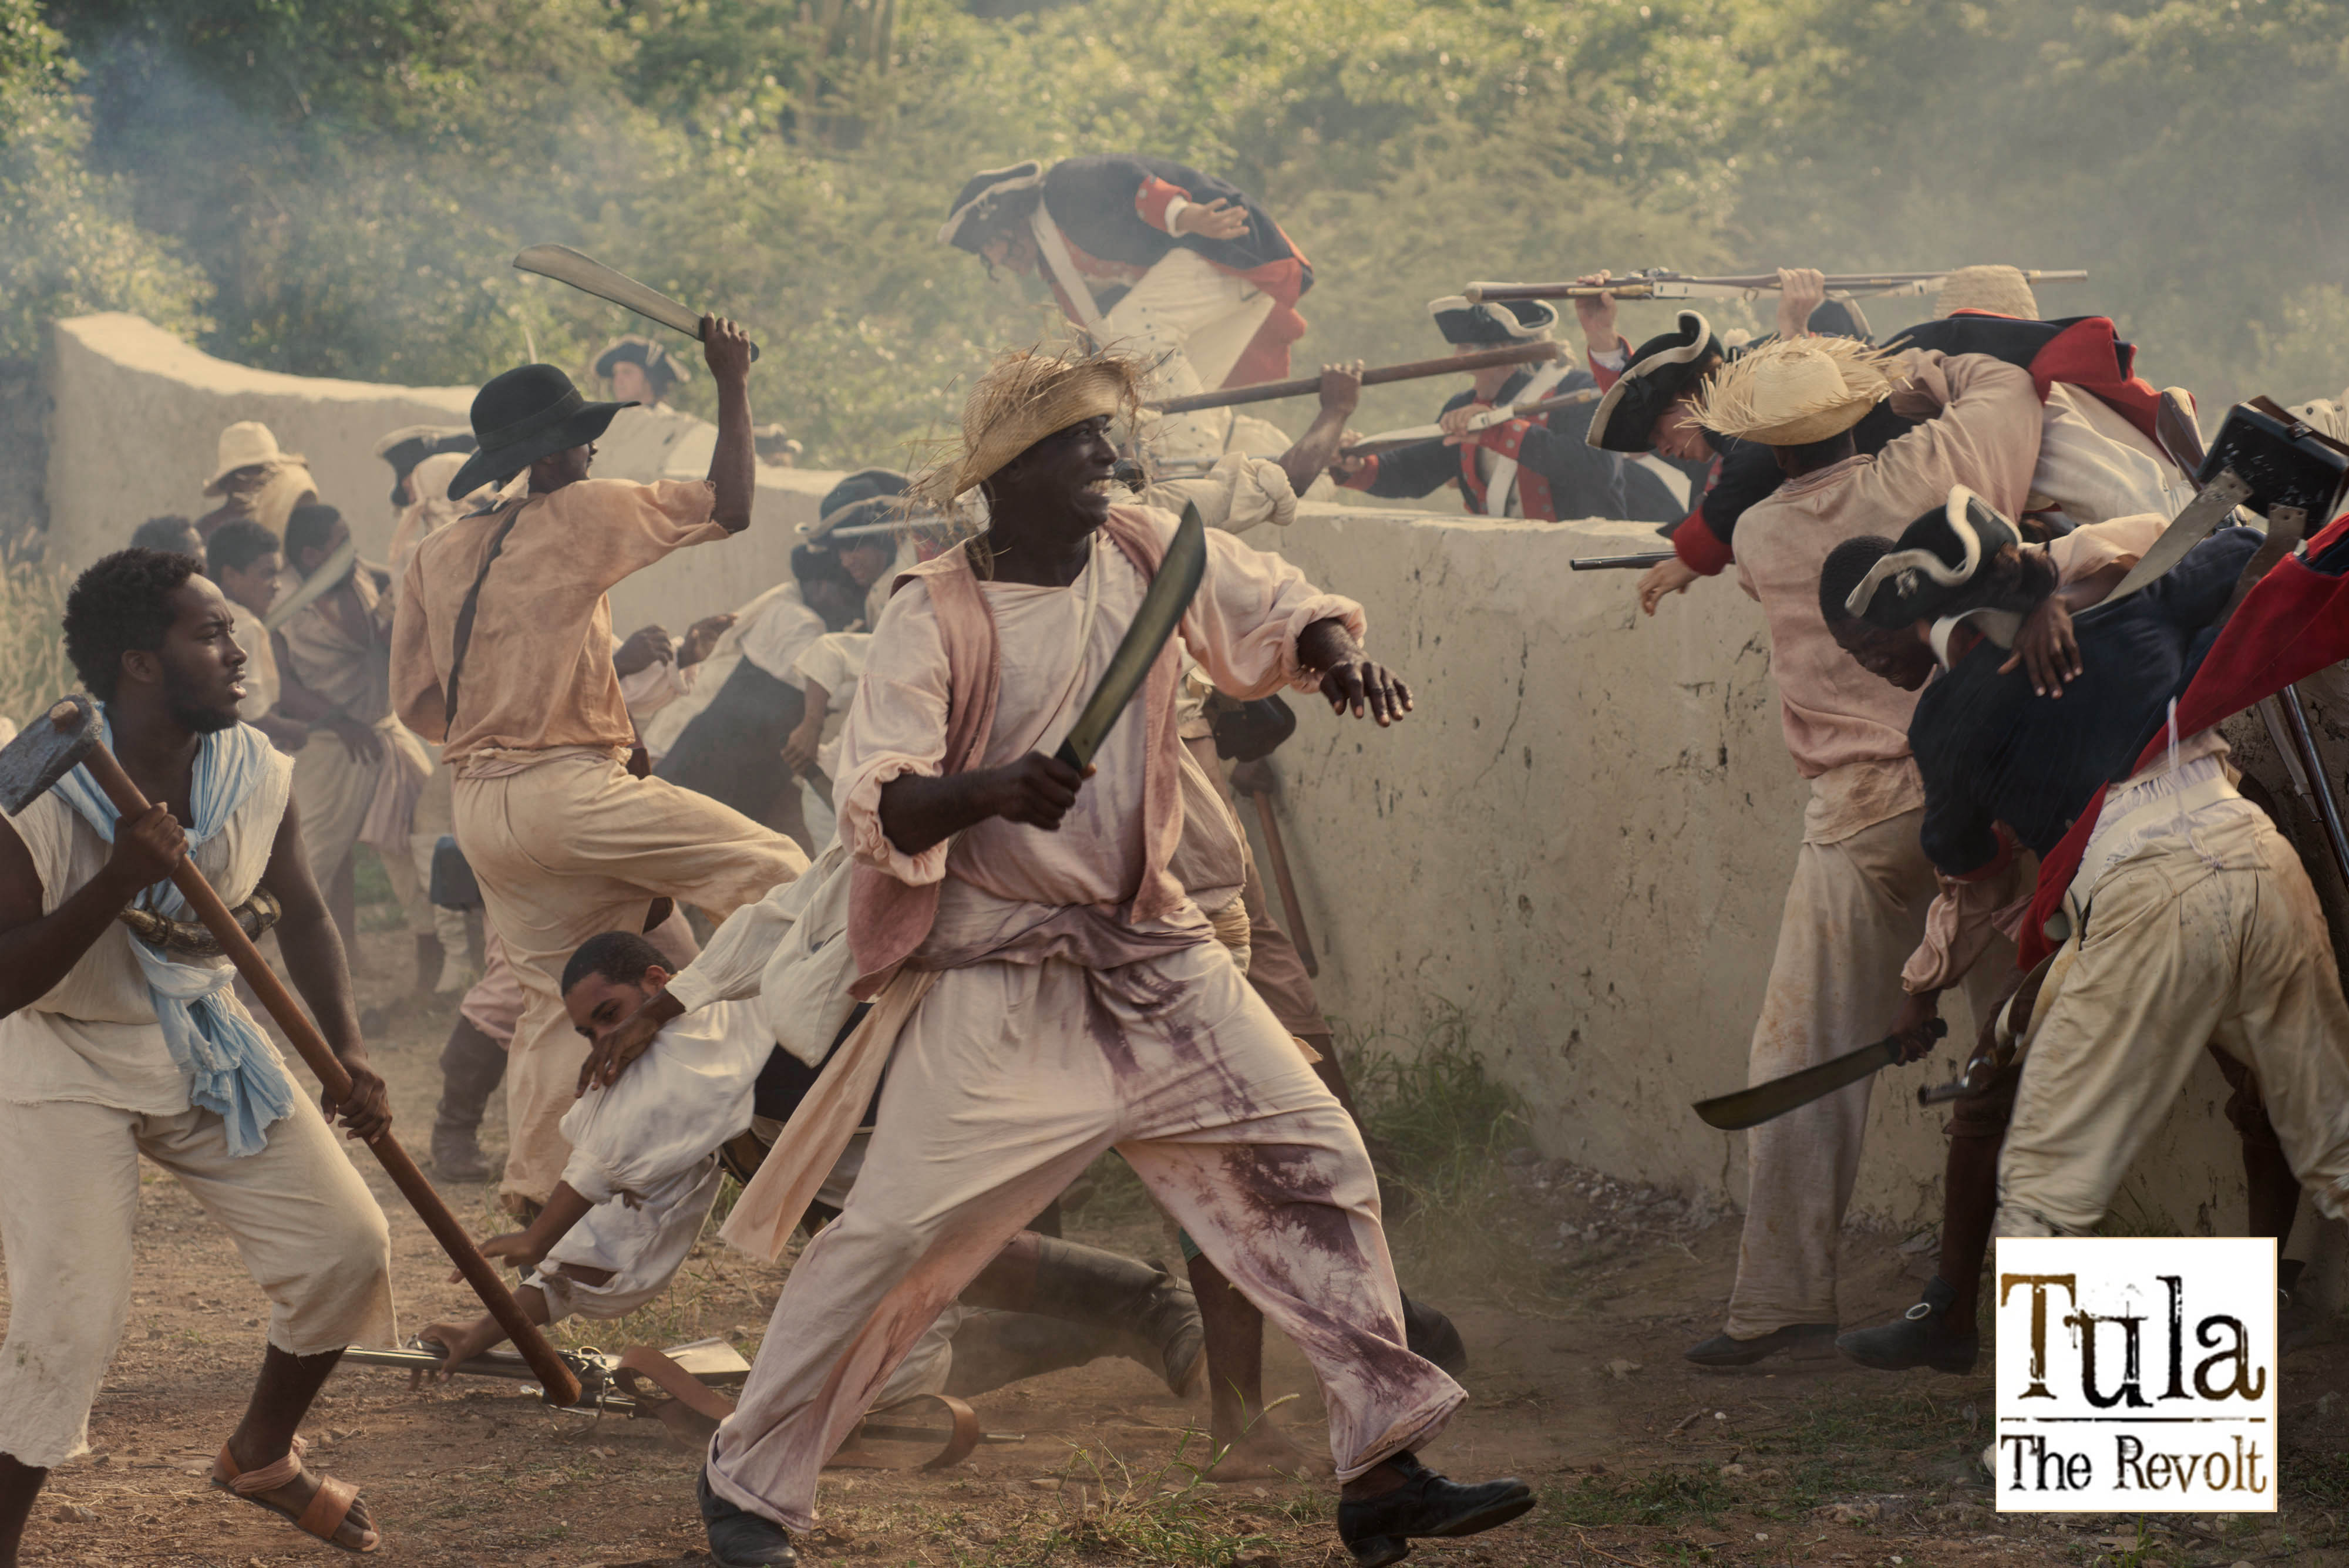 african american women slave revolts On april 6, 1712, african slaves in new york city rose up with anger and fury  these african men and women — enslaved and oppressed into.